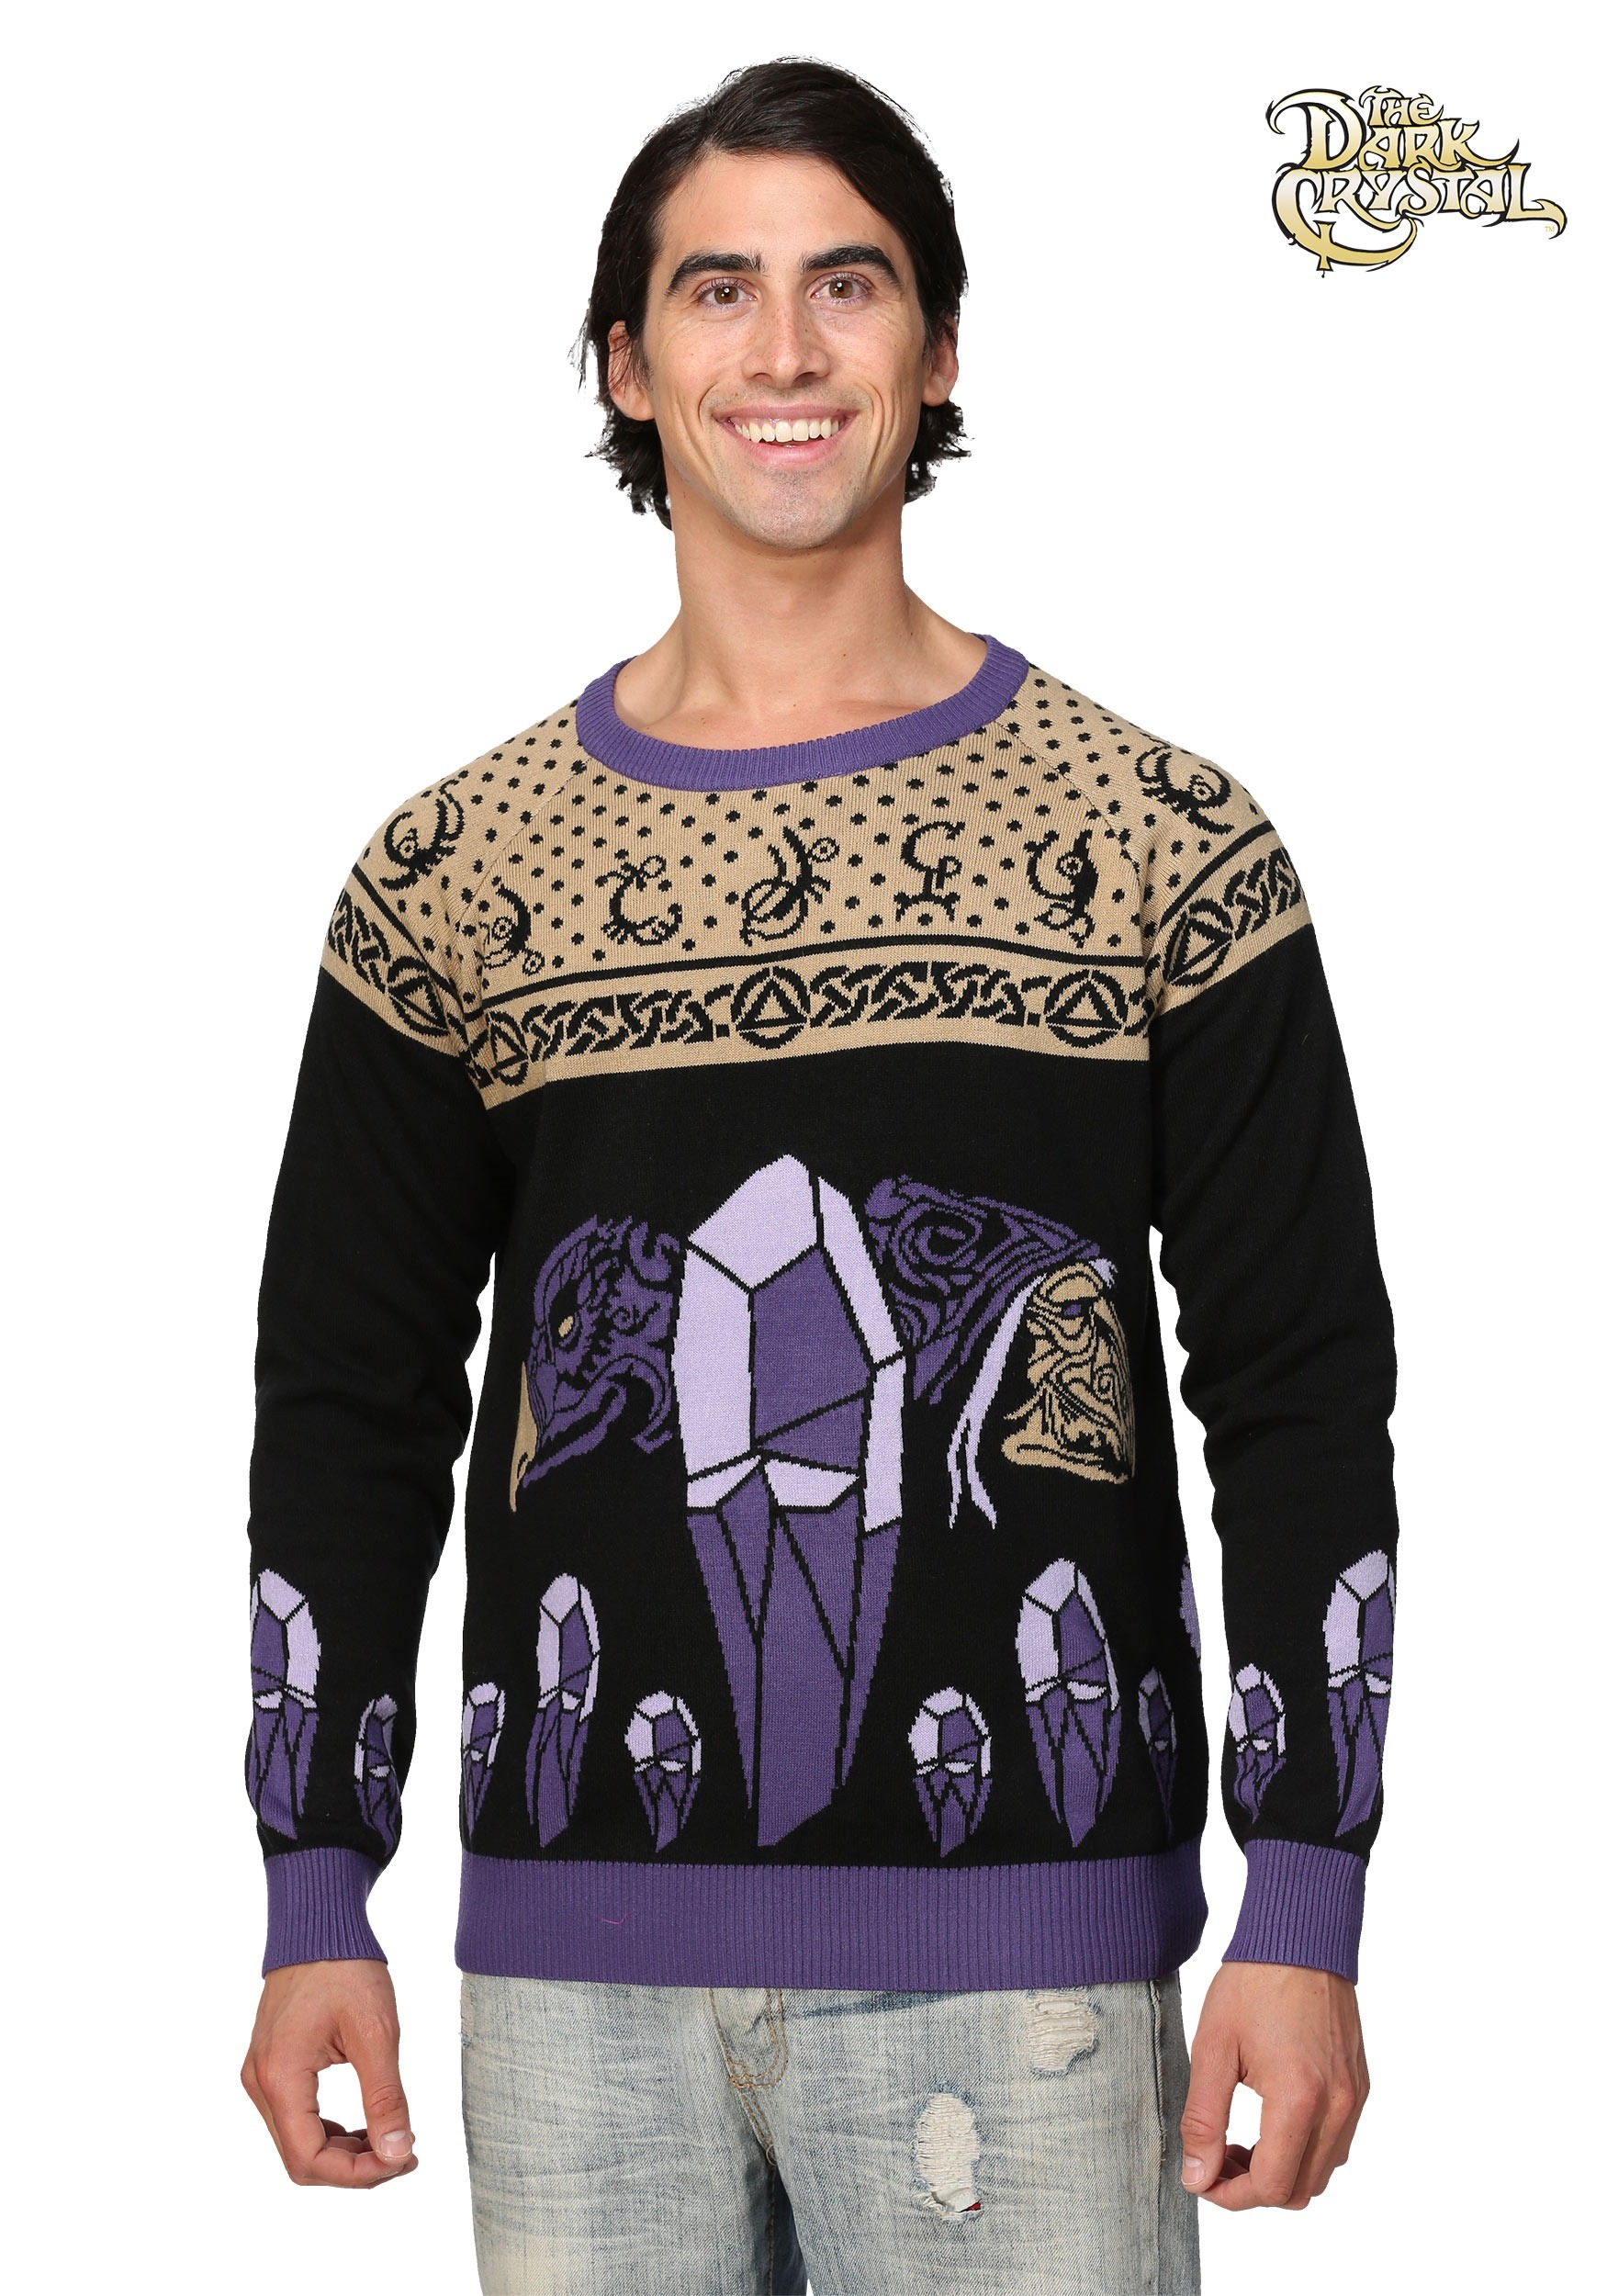 The Dark Crystal Ugly Christmas Sweater